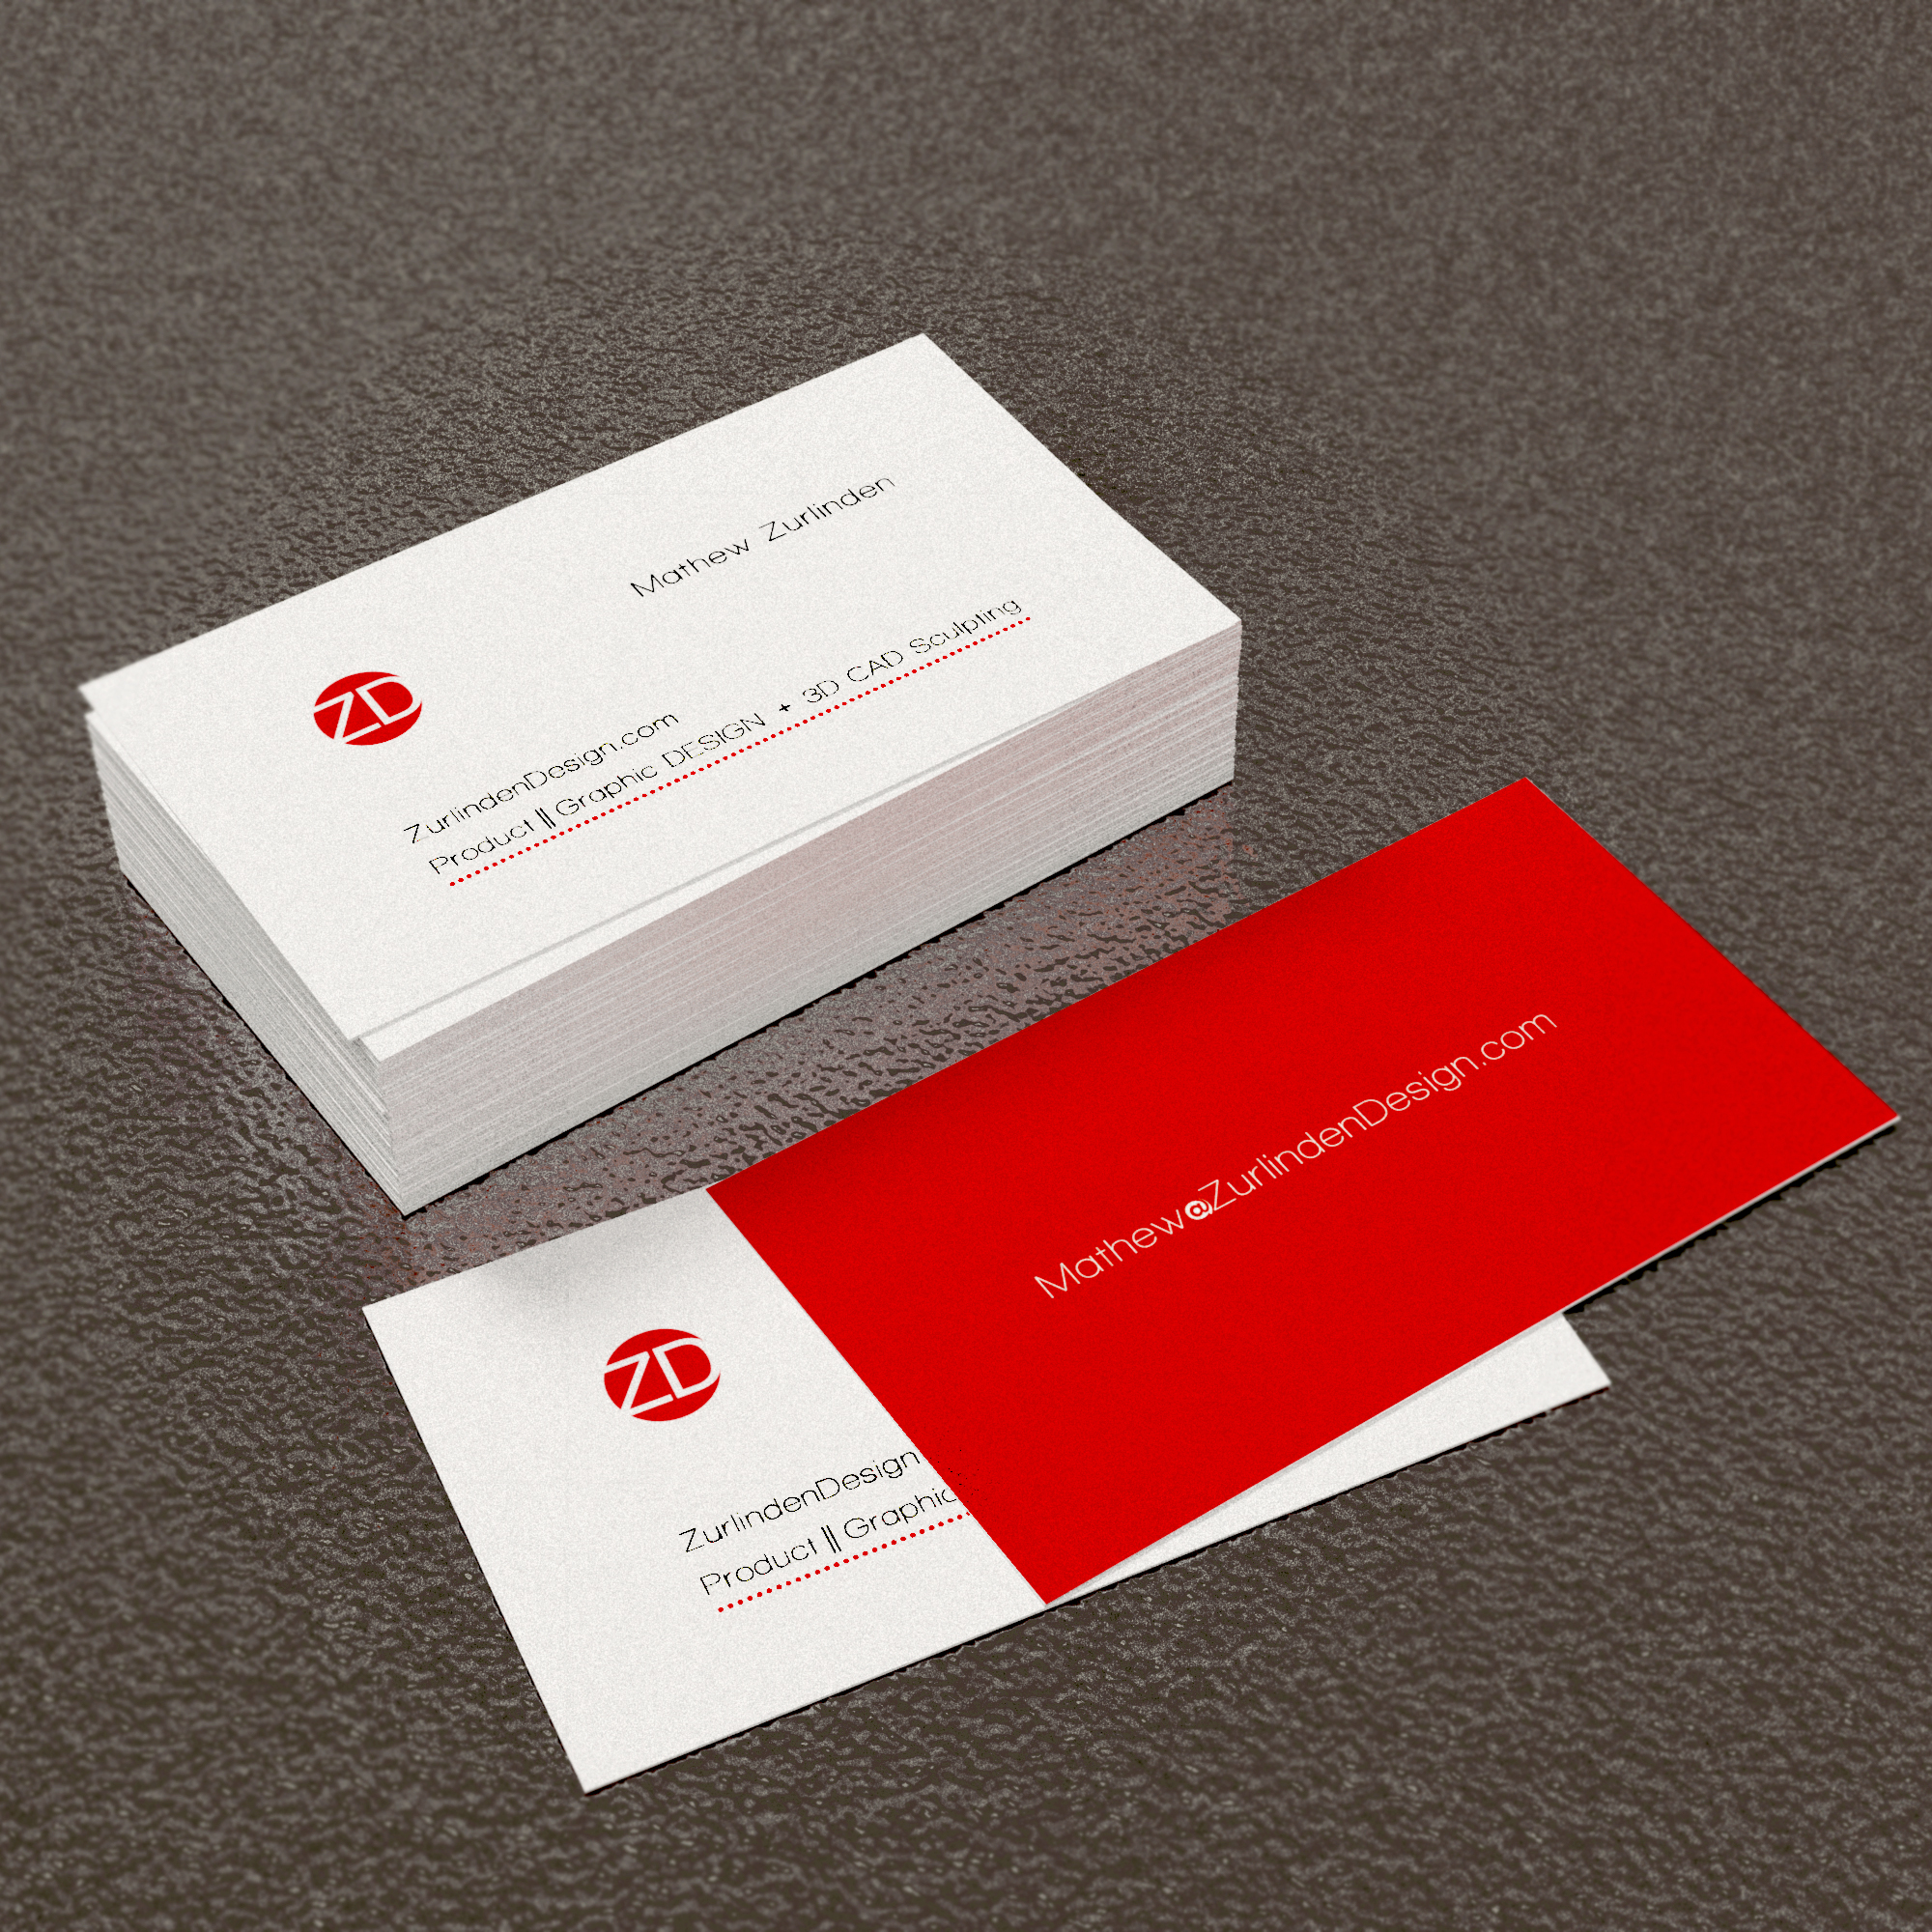 Square business cards print business cards oukasfo reheart Gallery